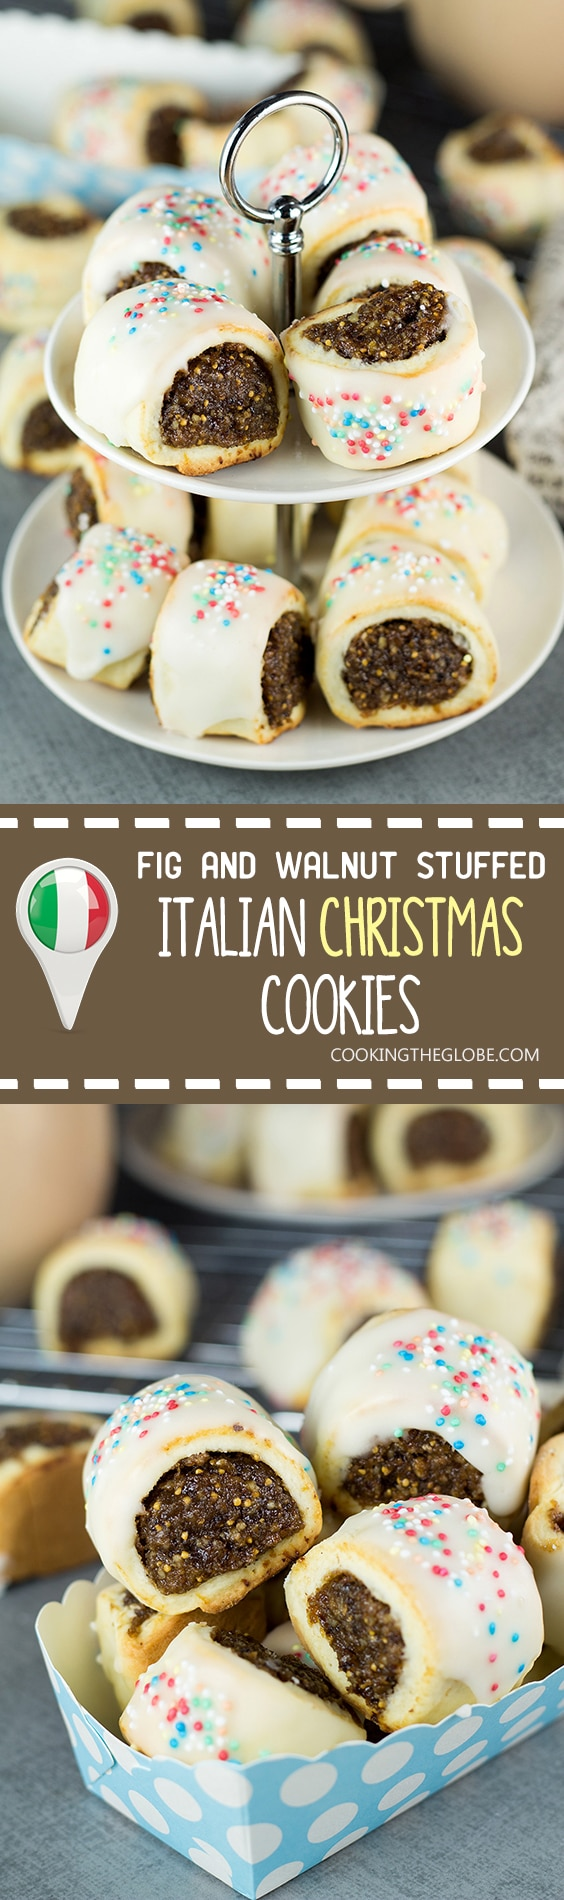 Italian Christmas Cookies With Figs Walnuts